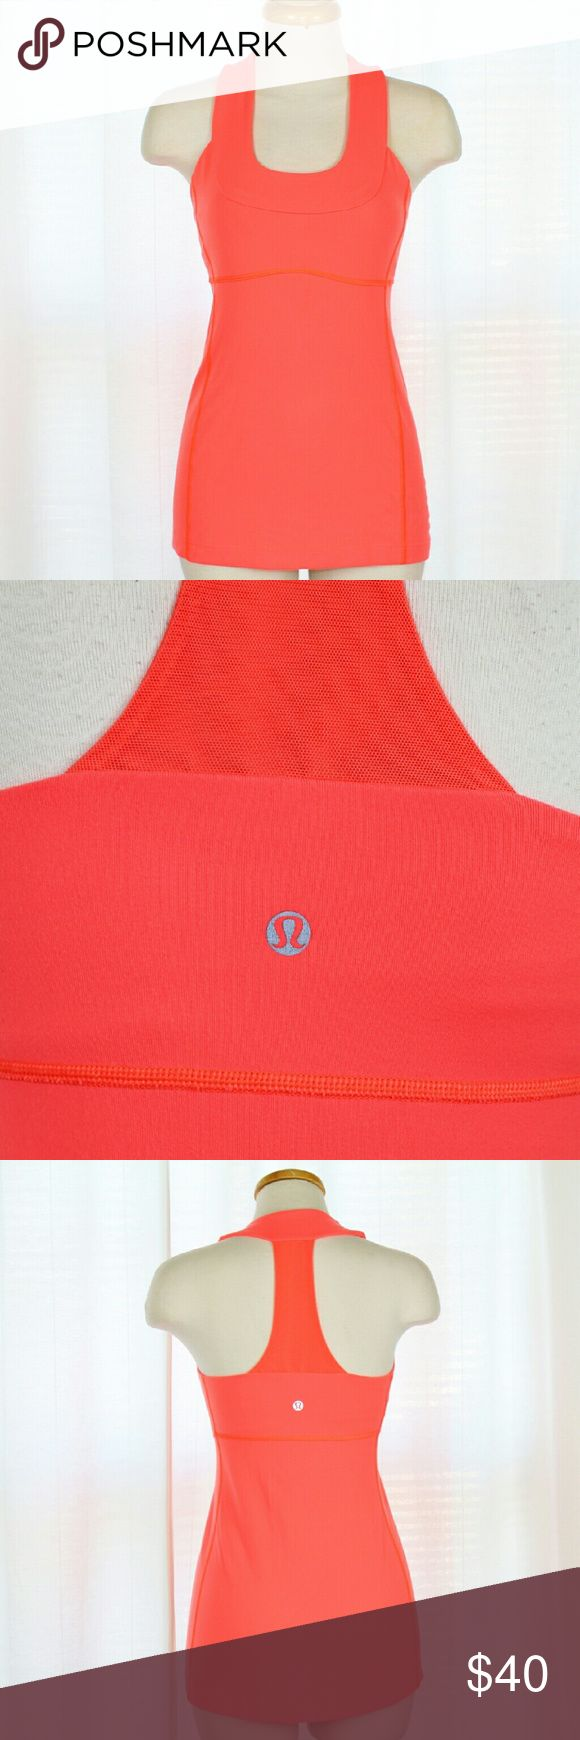 Luluoemon Scoop Neck Tank with Mesh Racerback Lululemon neon melon mesh racerback tank top in gently used condition. This top features moisture wicking, breathable, Luxtreme 4-way stretch fabric with scoop neck and built in shelf bra. Perfect for any type of workout!  Please let me know if you have questions, or need more pictures. I will consider all reasonable offers, but no trades, please. lululemon athletica Tops Tank Tops